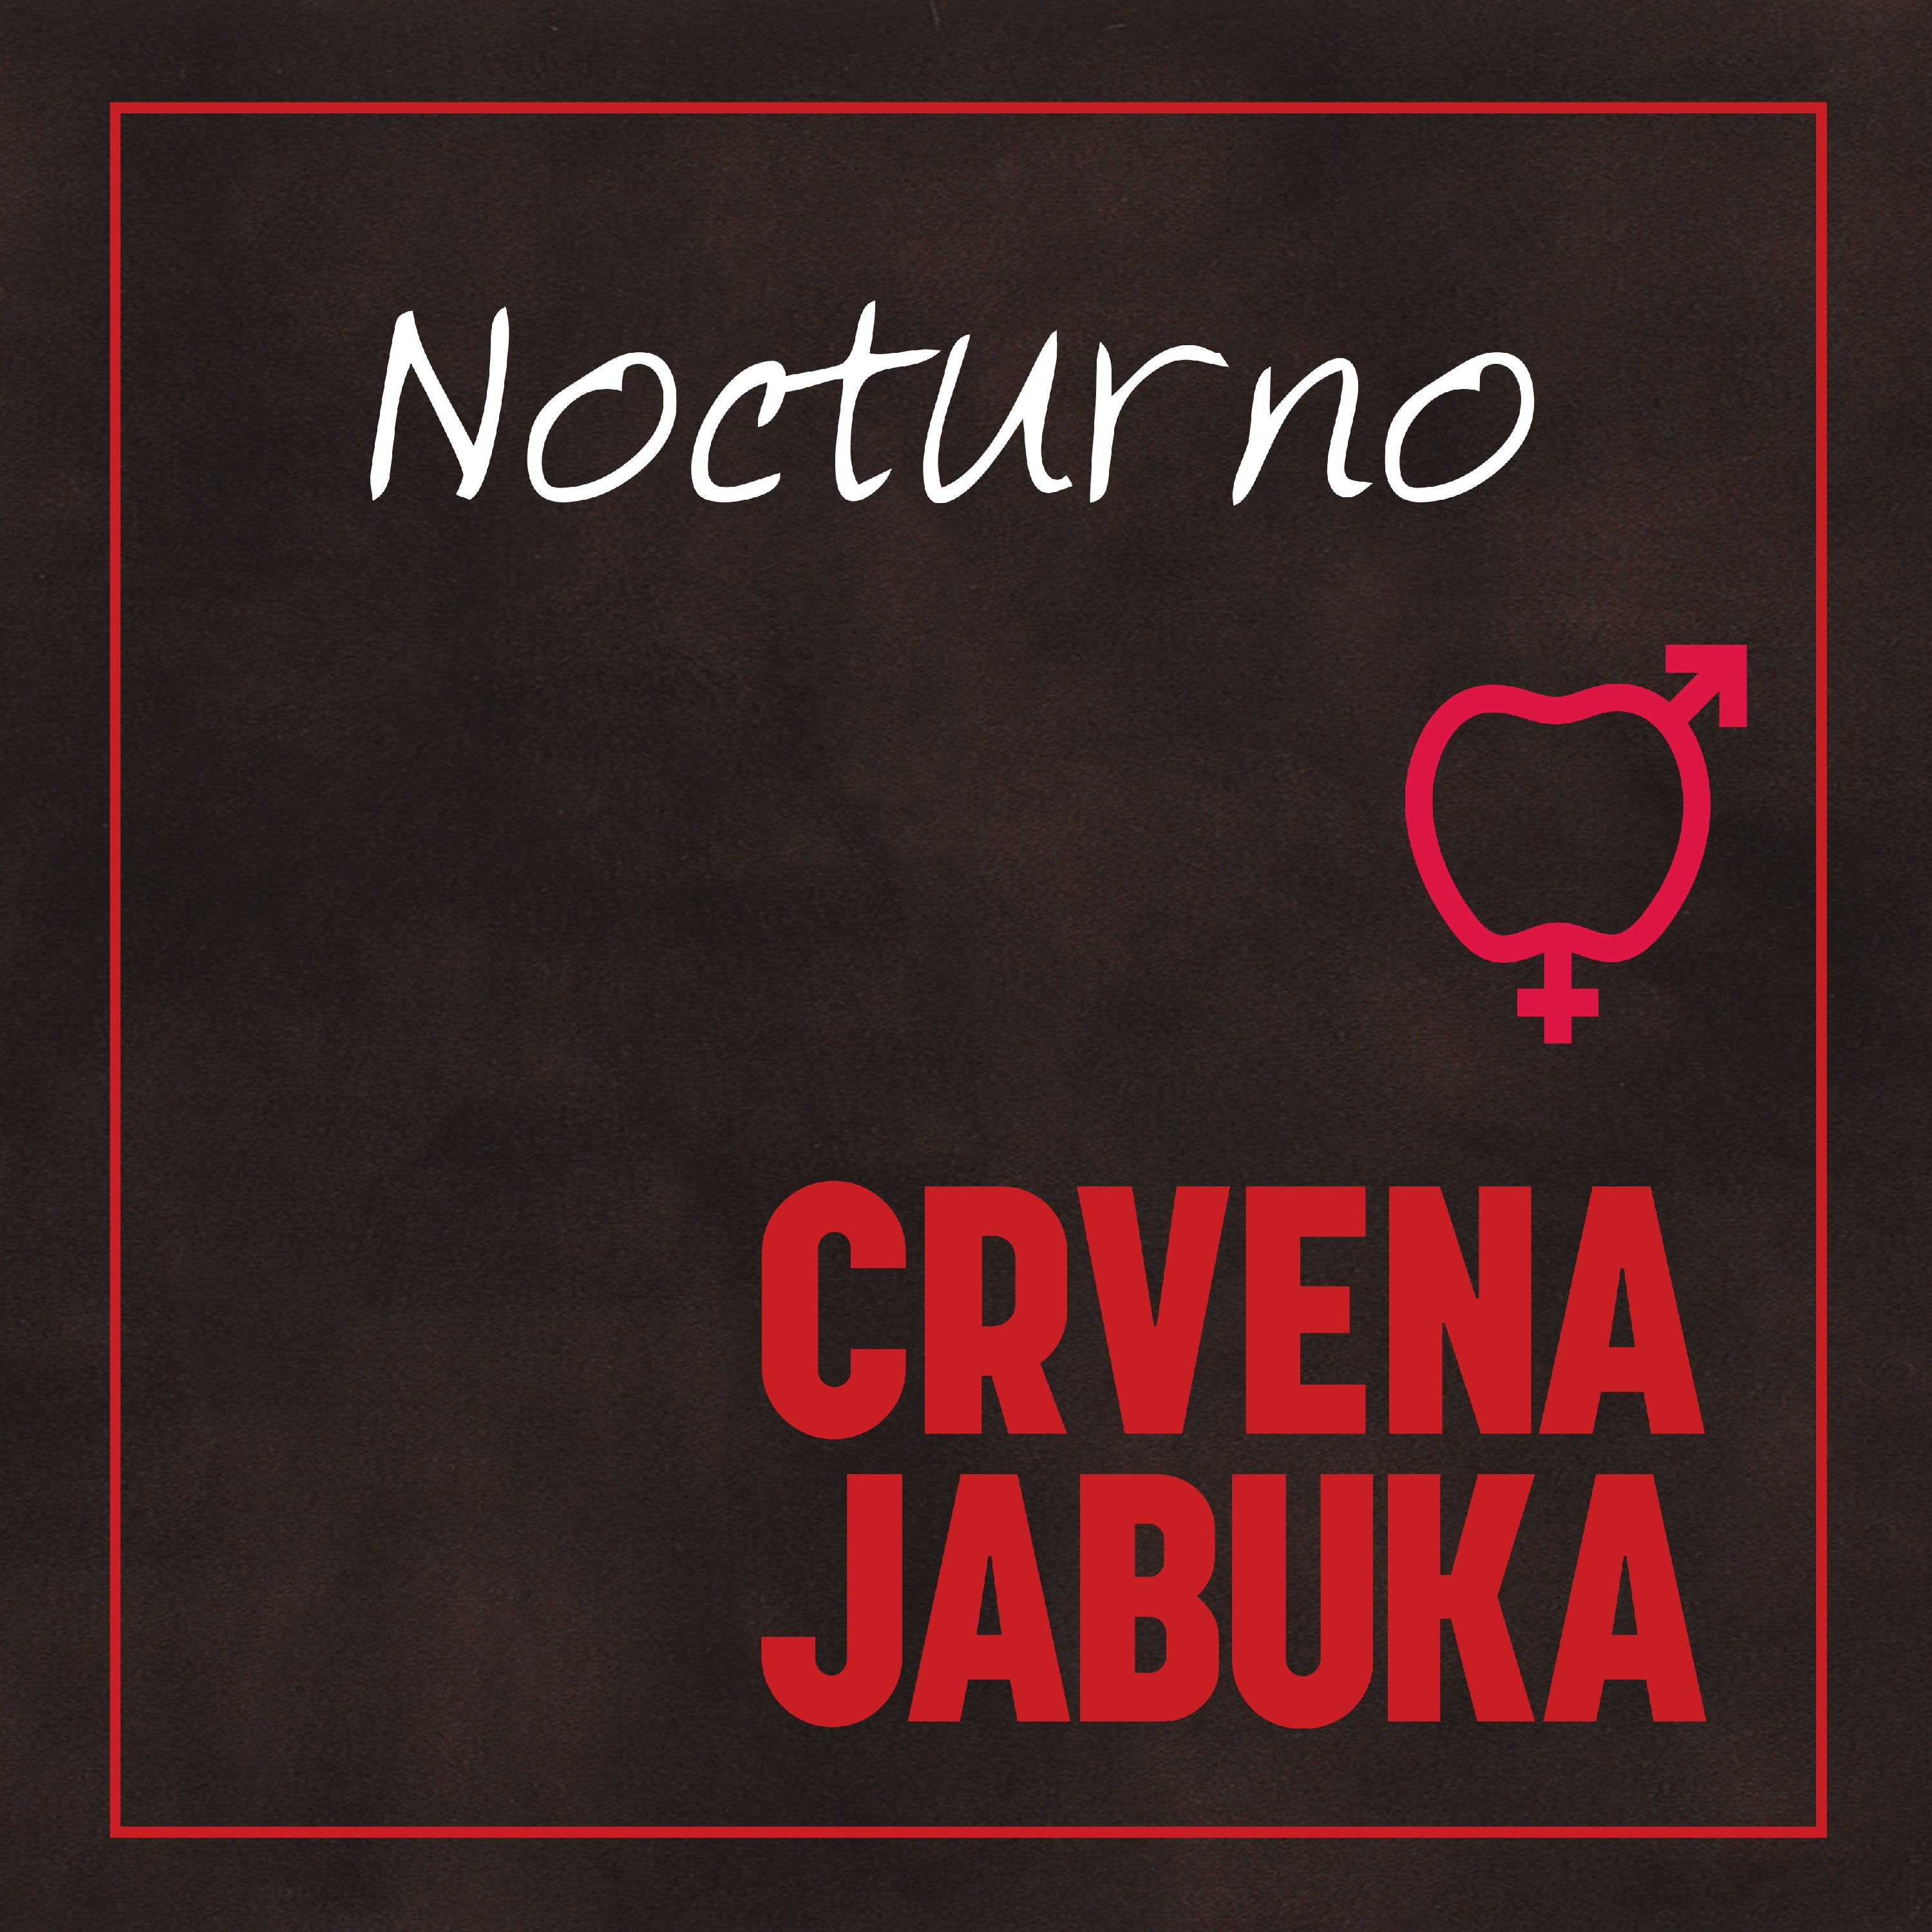 NOCTURNO (LONG PLAY)